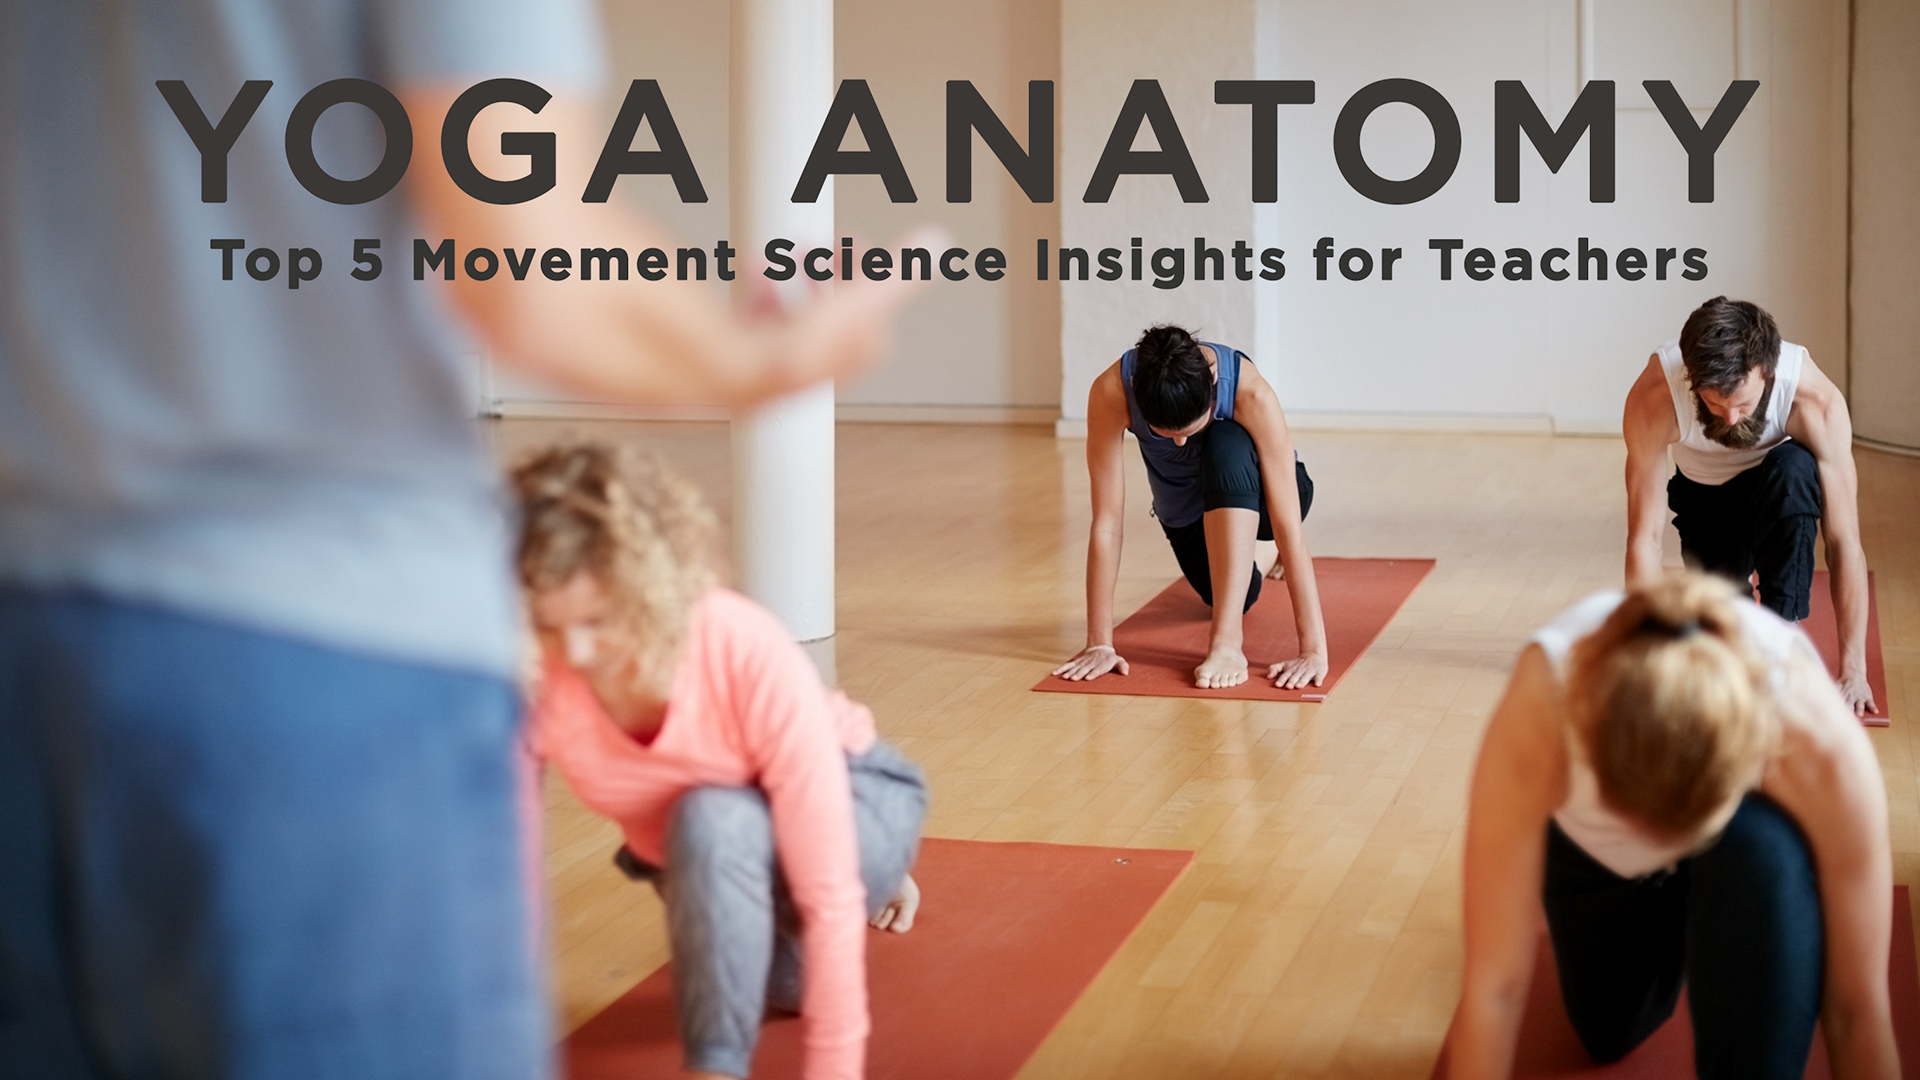 Yoga Anatomy: Top 5 Movement Science Insights for Teachers